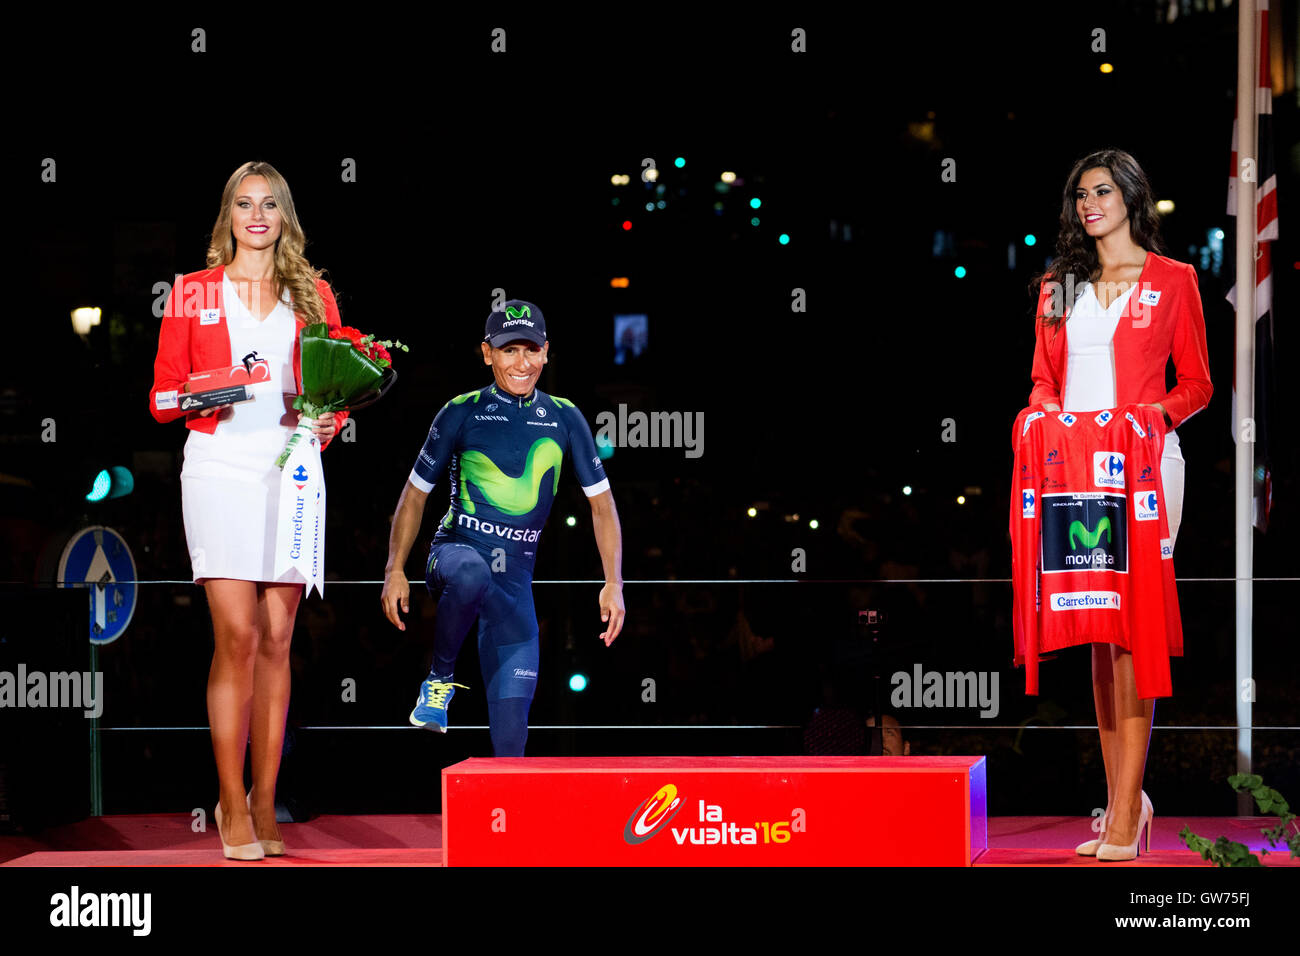 Madrid, Spain. 11th September, 2016. Nairo celebrates his victory at final podium of 21st stage of cycling race Stock Photo